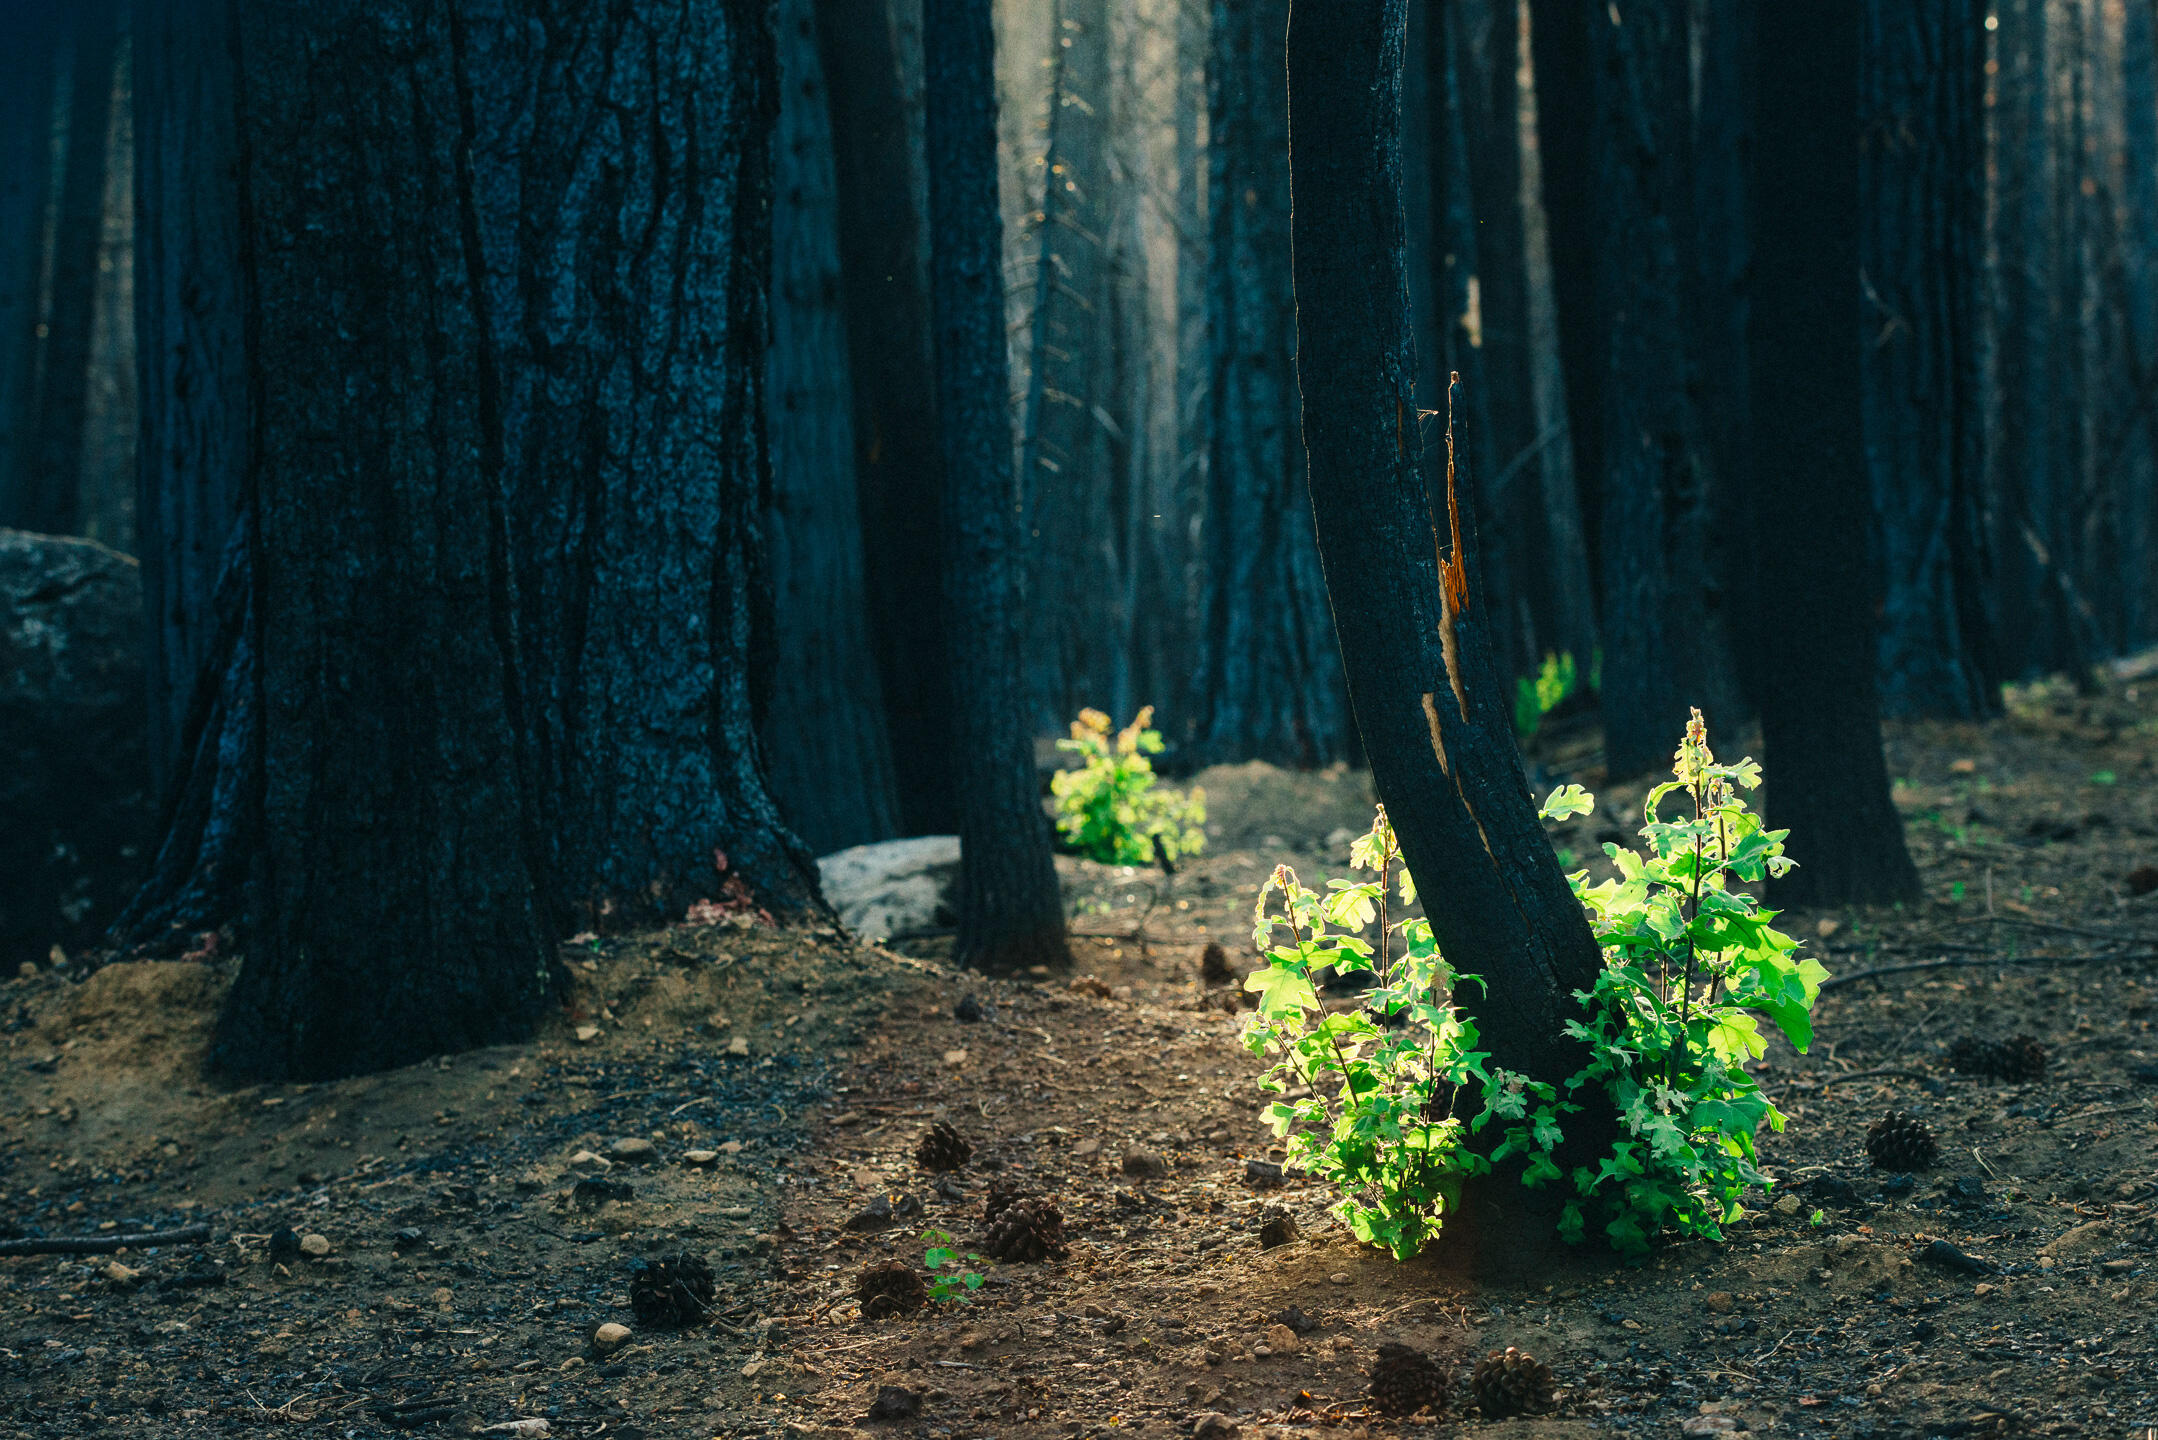 Just one year after the blaze known as the Rim fire, a California black oak is quick to regenerate. Ken Etzel